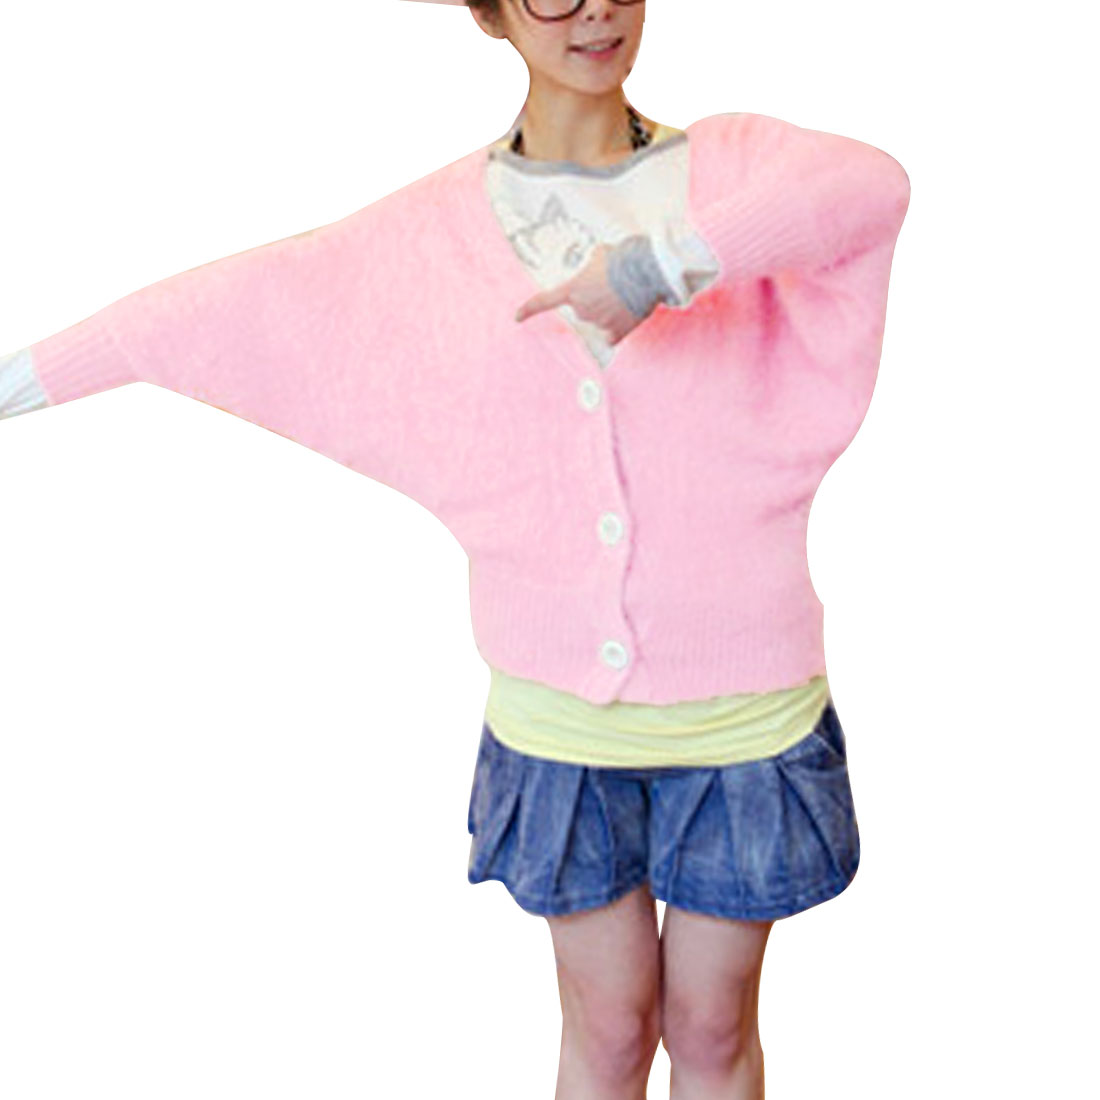 Women's V Neck Batwing Sleeves Loose Stretchy Pink Plush Sweater Coat S